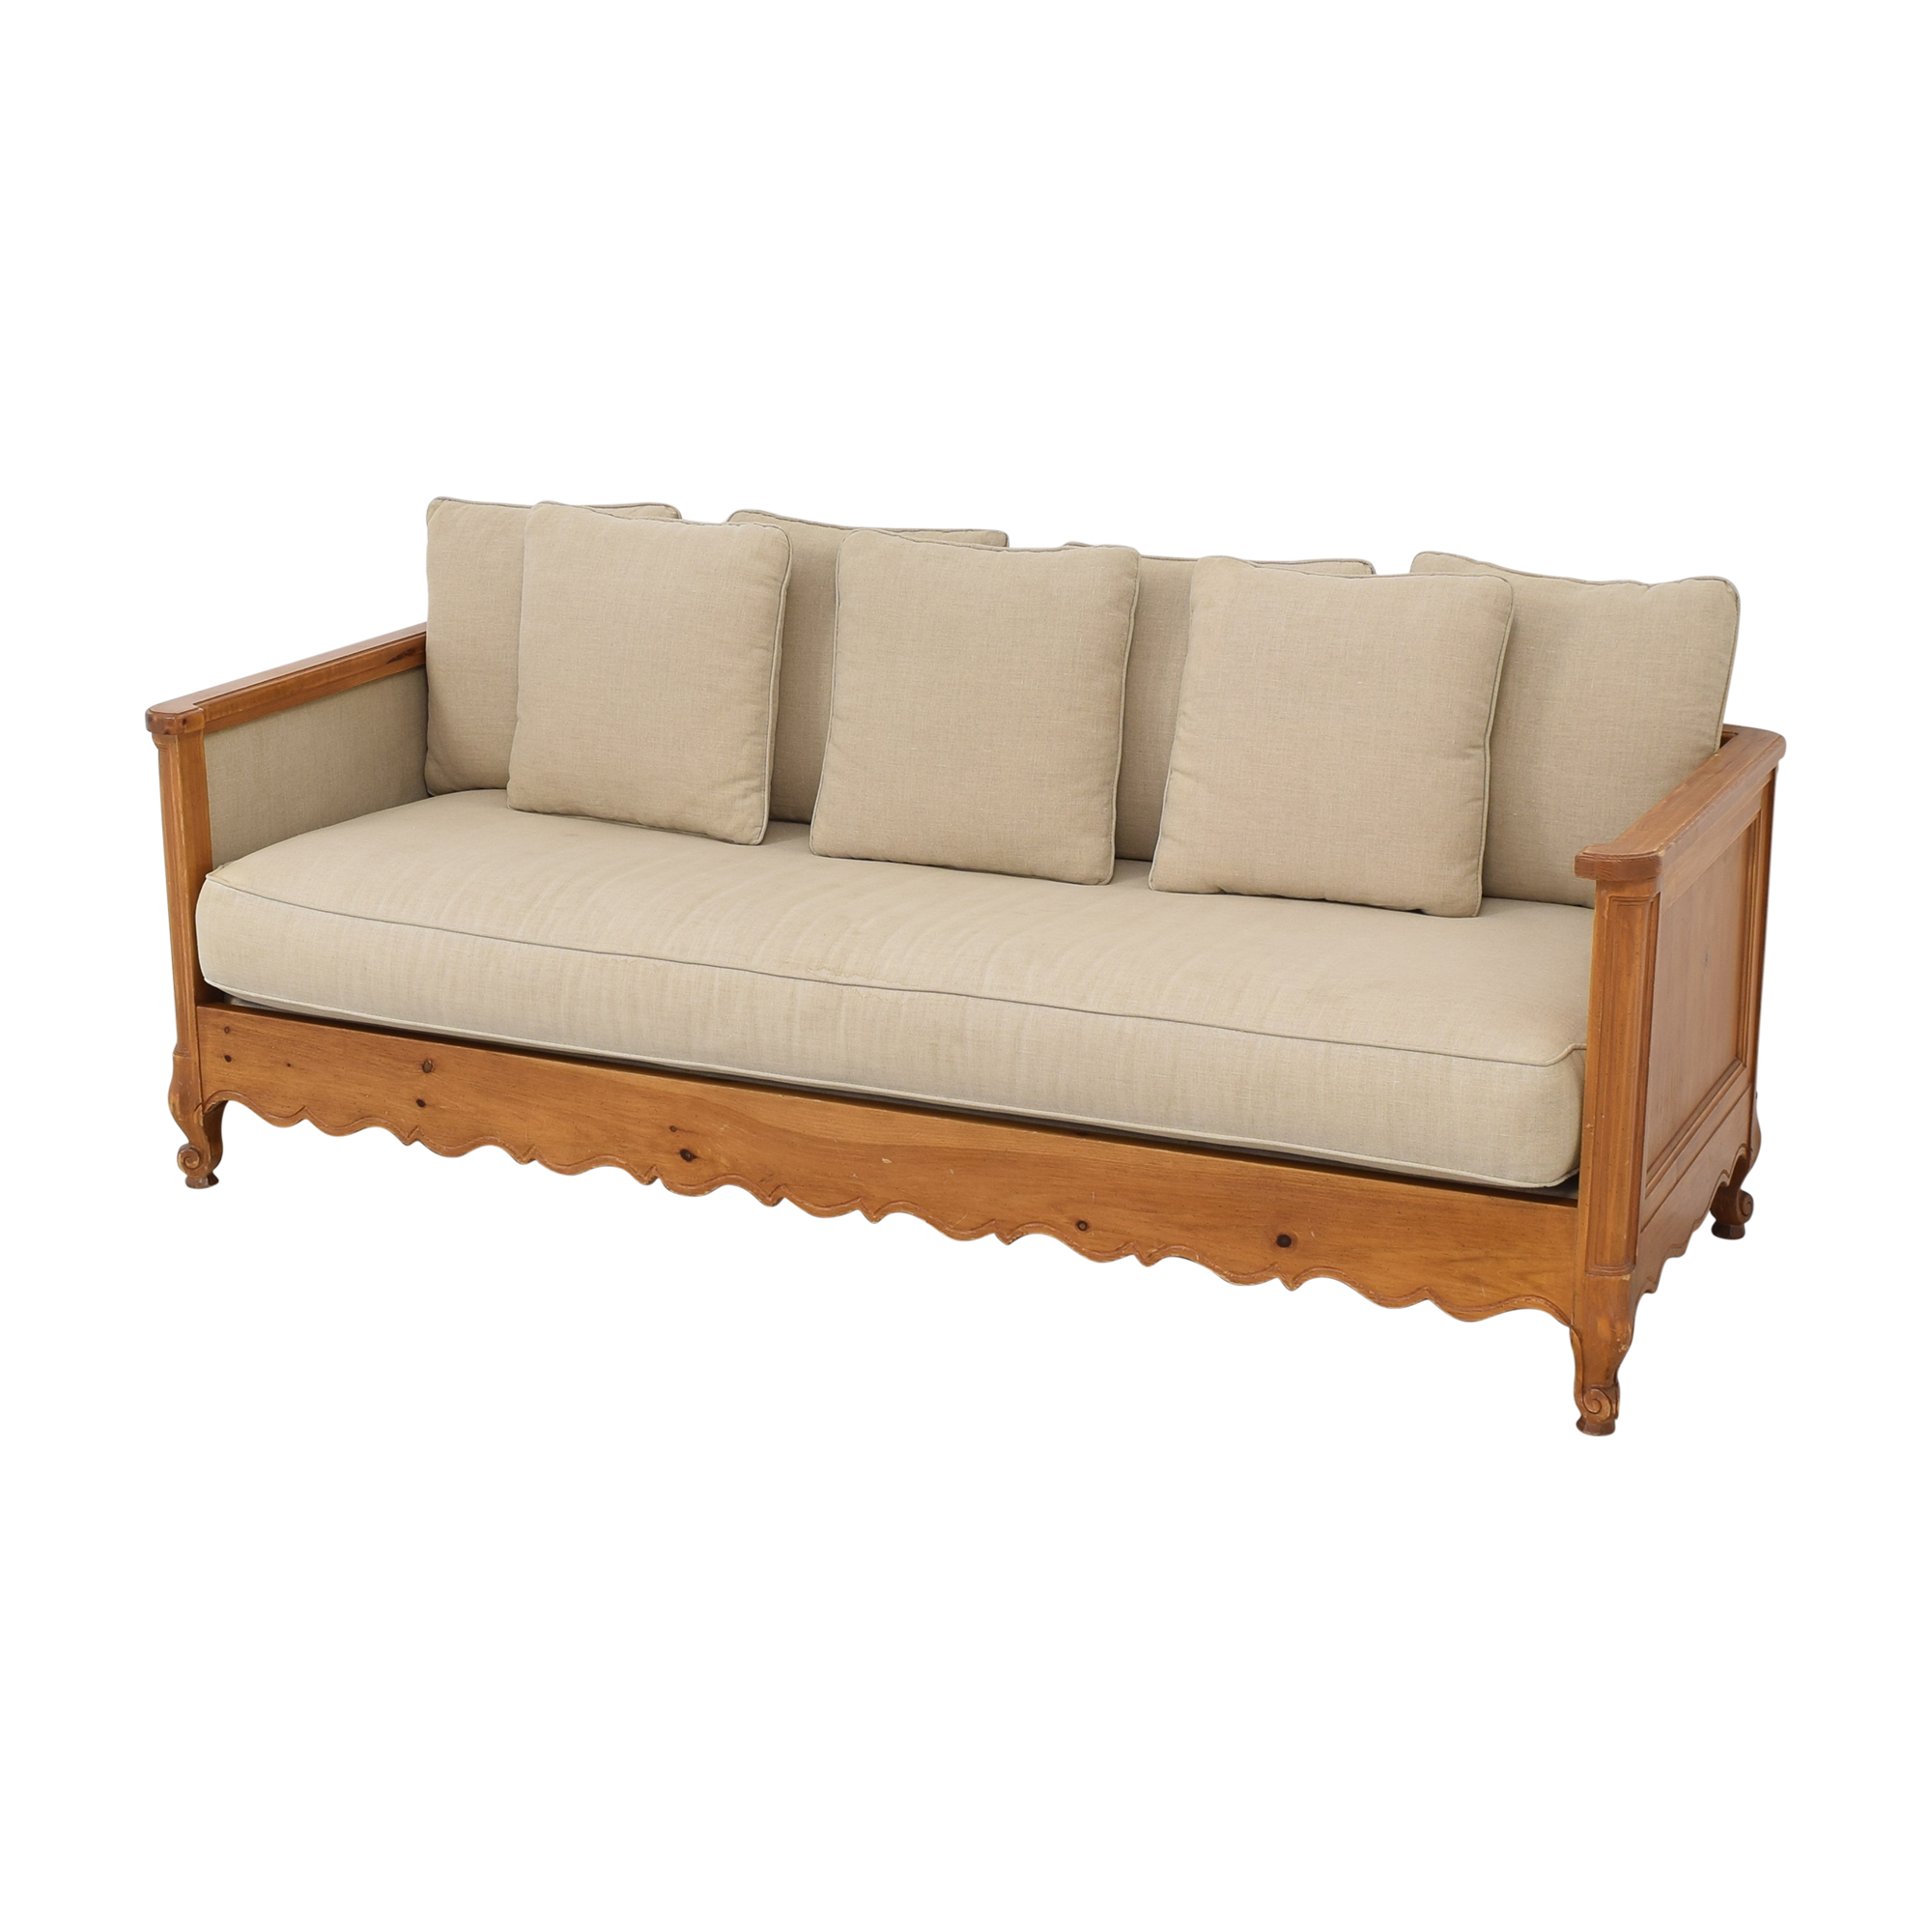 buy  Wood Frame Sofa online